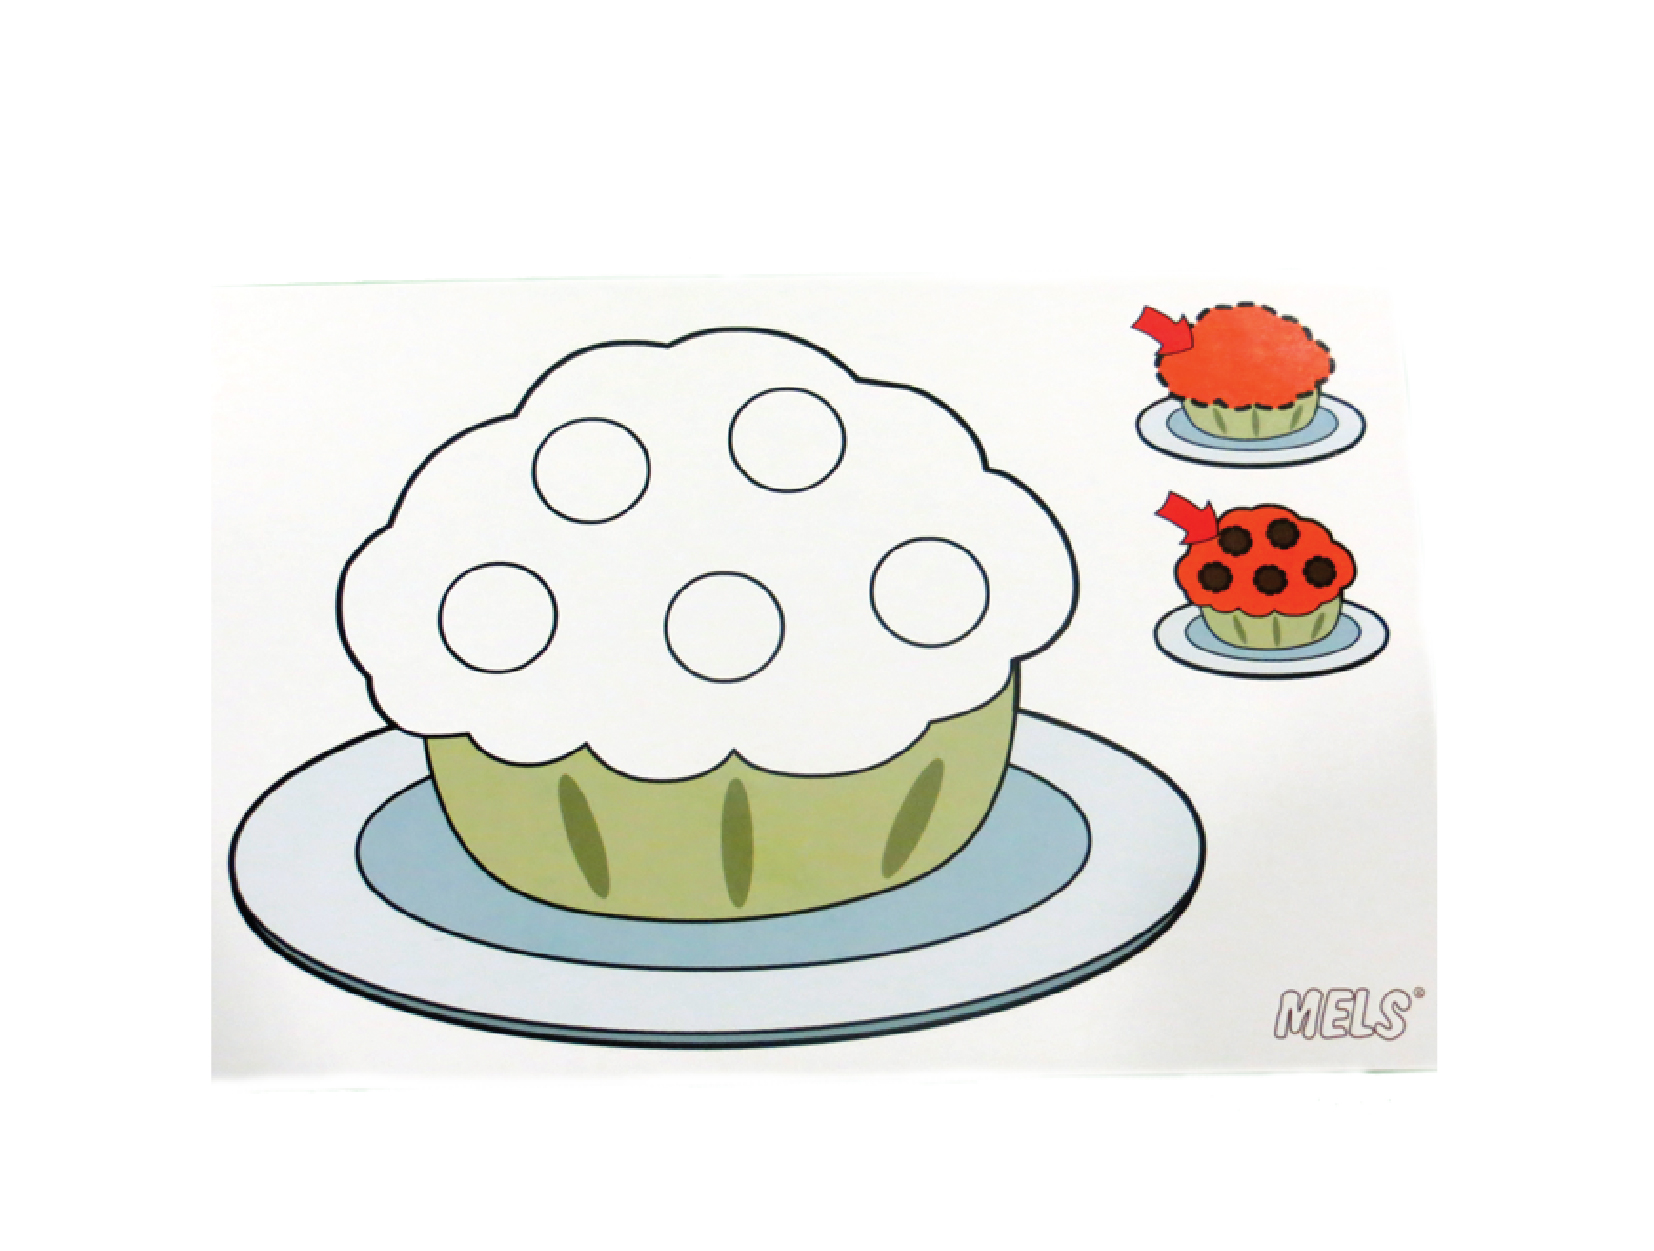 Project 5.2 A cupcake